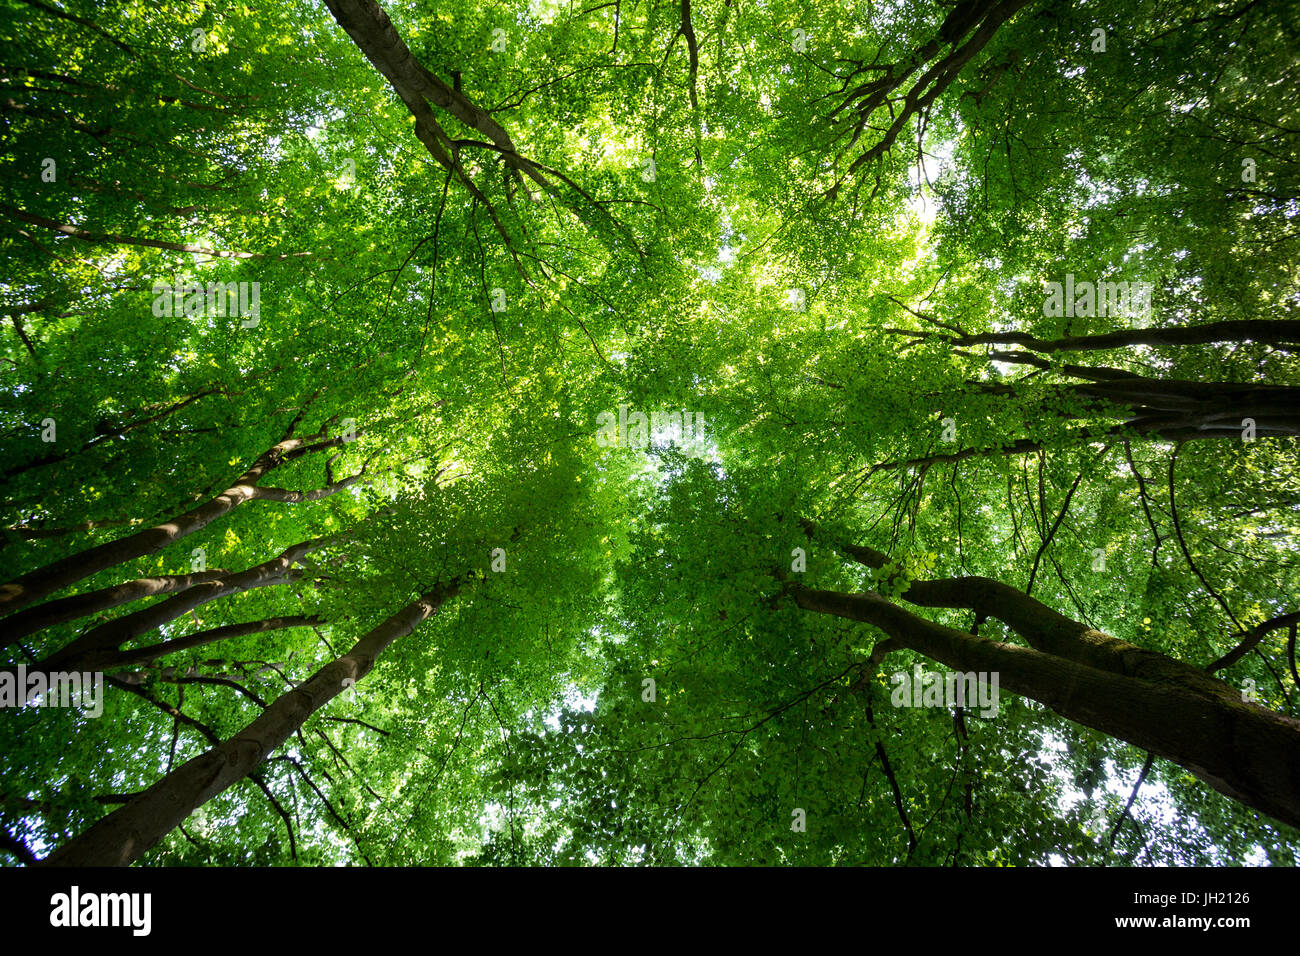 Canopy of a lush green forest seen from below. Stock Photo